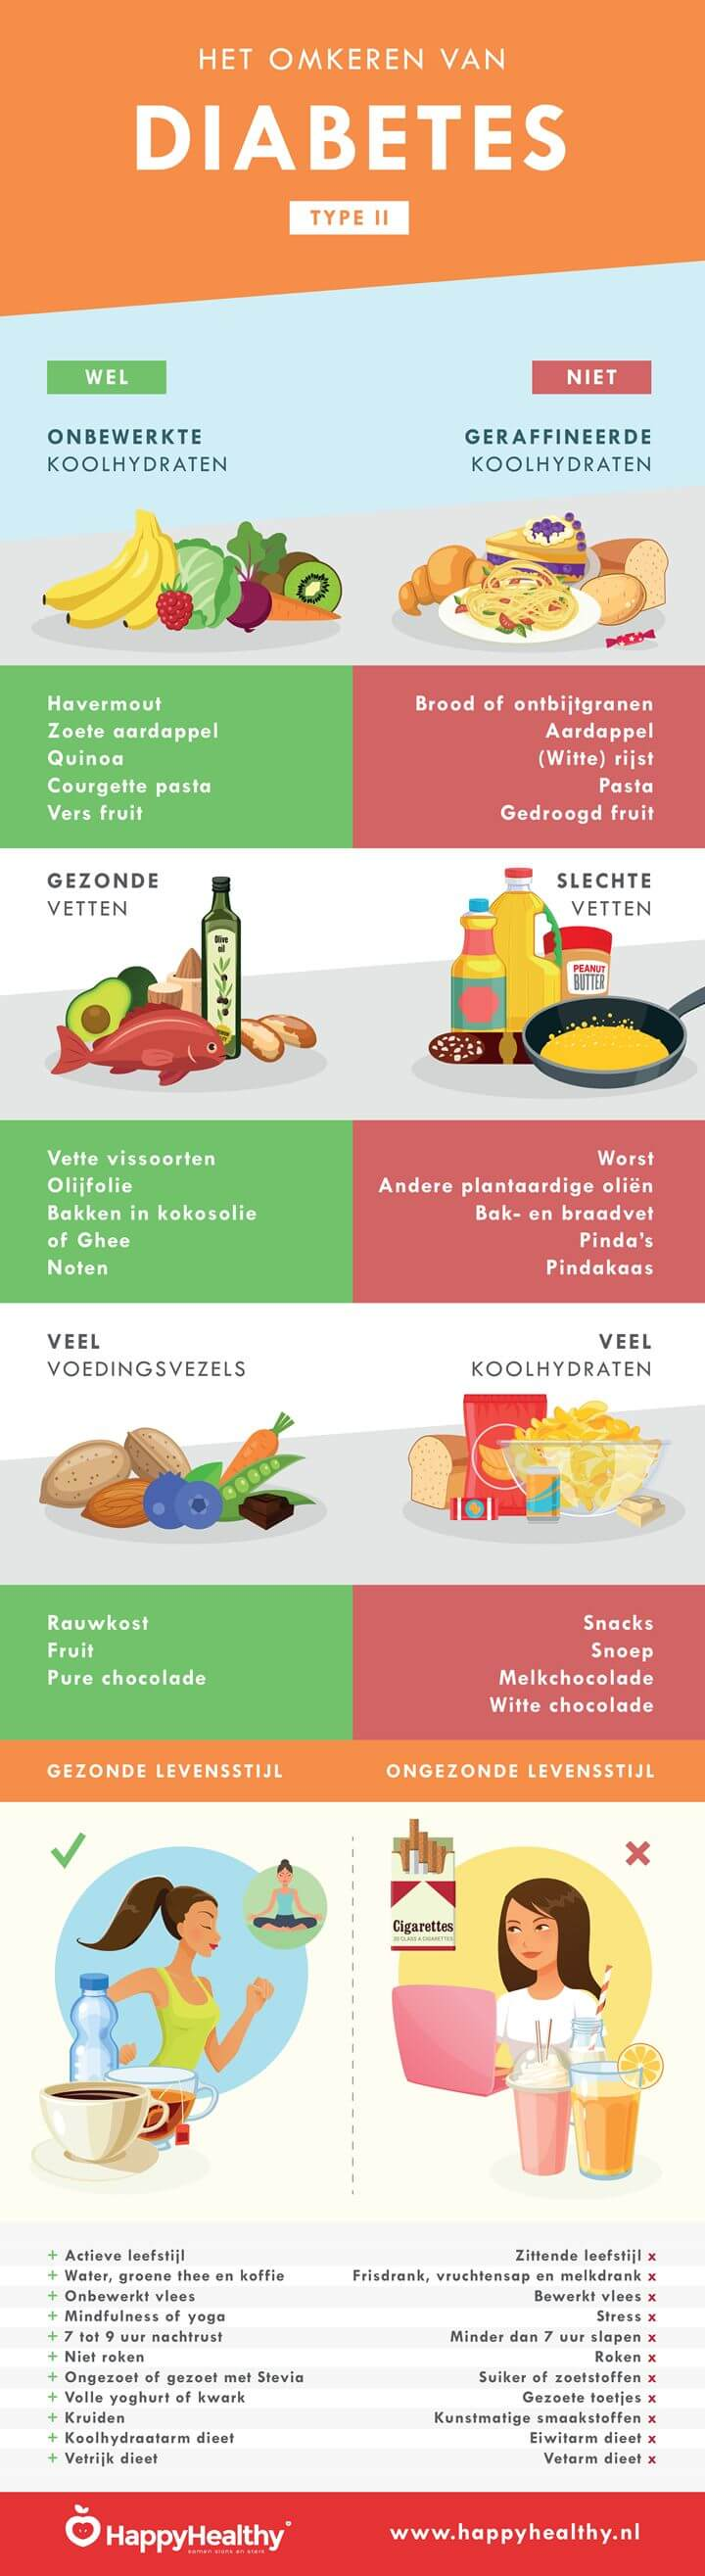 12 Tips Om Diabetes Type 2 Suikerziekte Te Genezen In 8 Weken